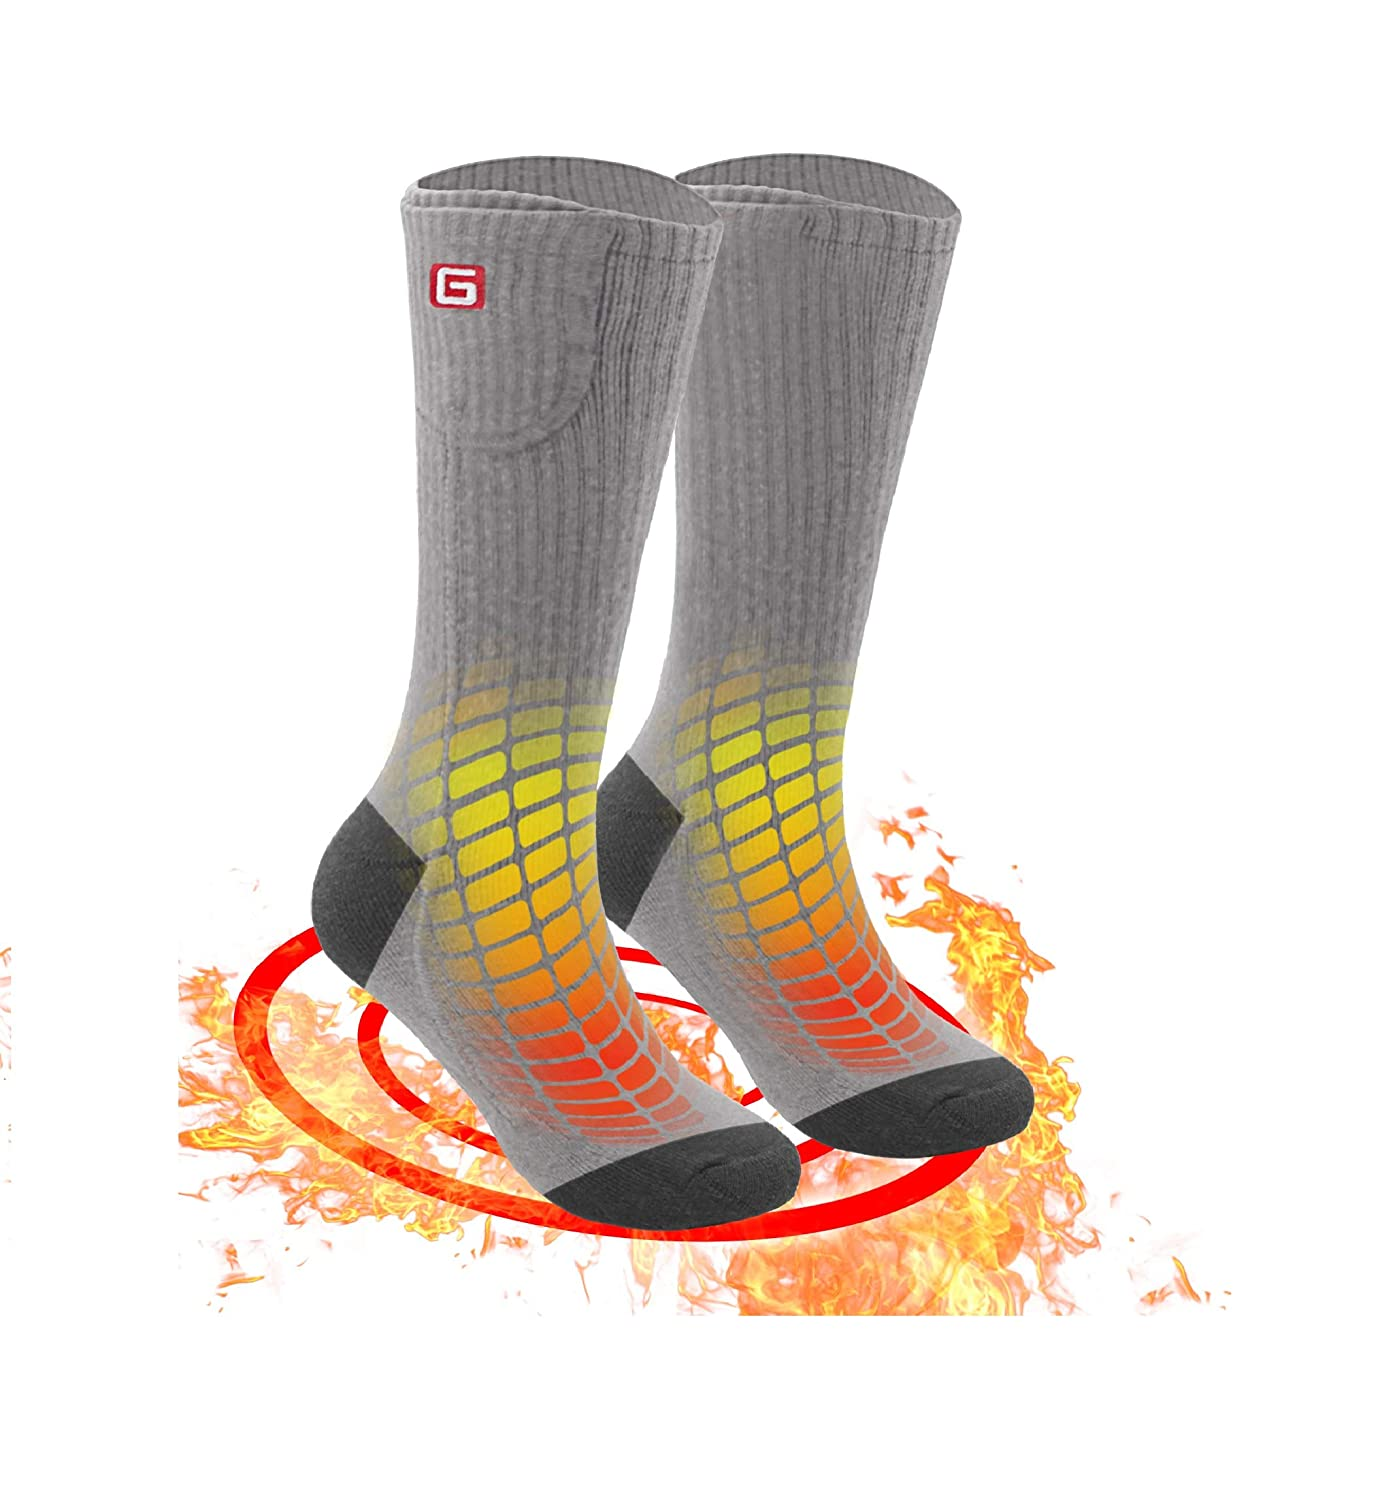 Greensha Rechargeable Electric Heated Socks Cold Weather Thermal Heated Sox with 3 Levels Temperature Control for Chronically Cold Feet,Indoor or Outdoor Activities